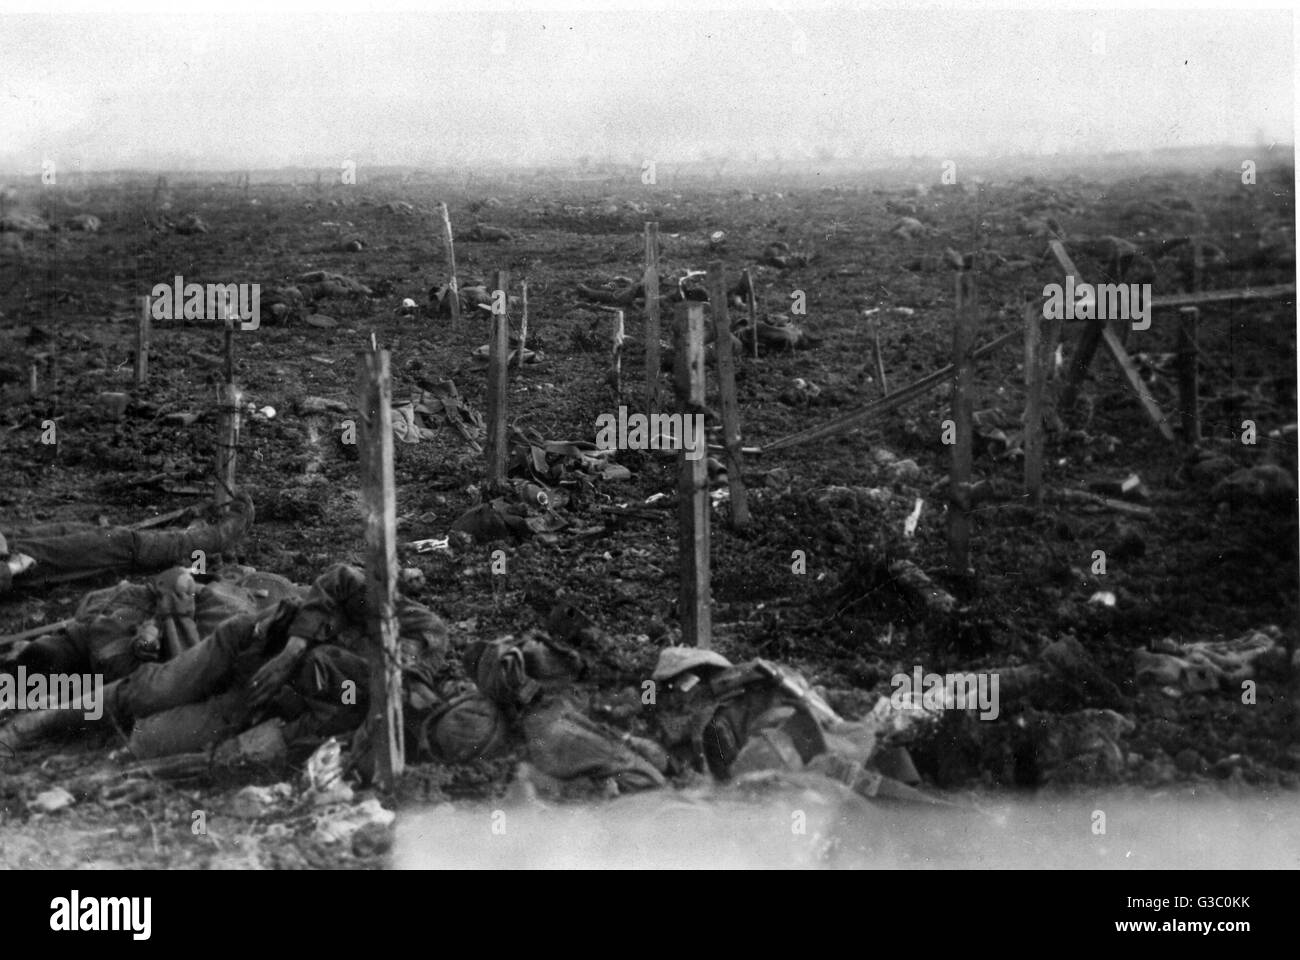 Corpses lie scattered in No Man's Land, following the British offensive at Neuve Chapelle, France, March 1915. - Stock Image